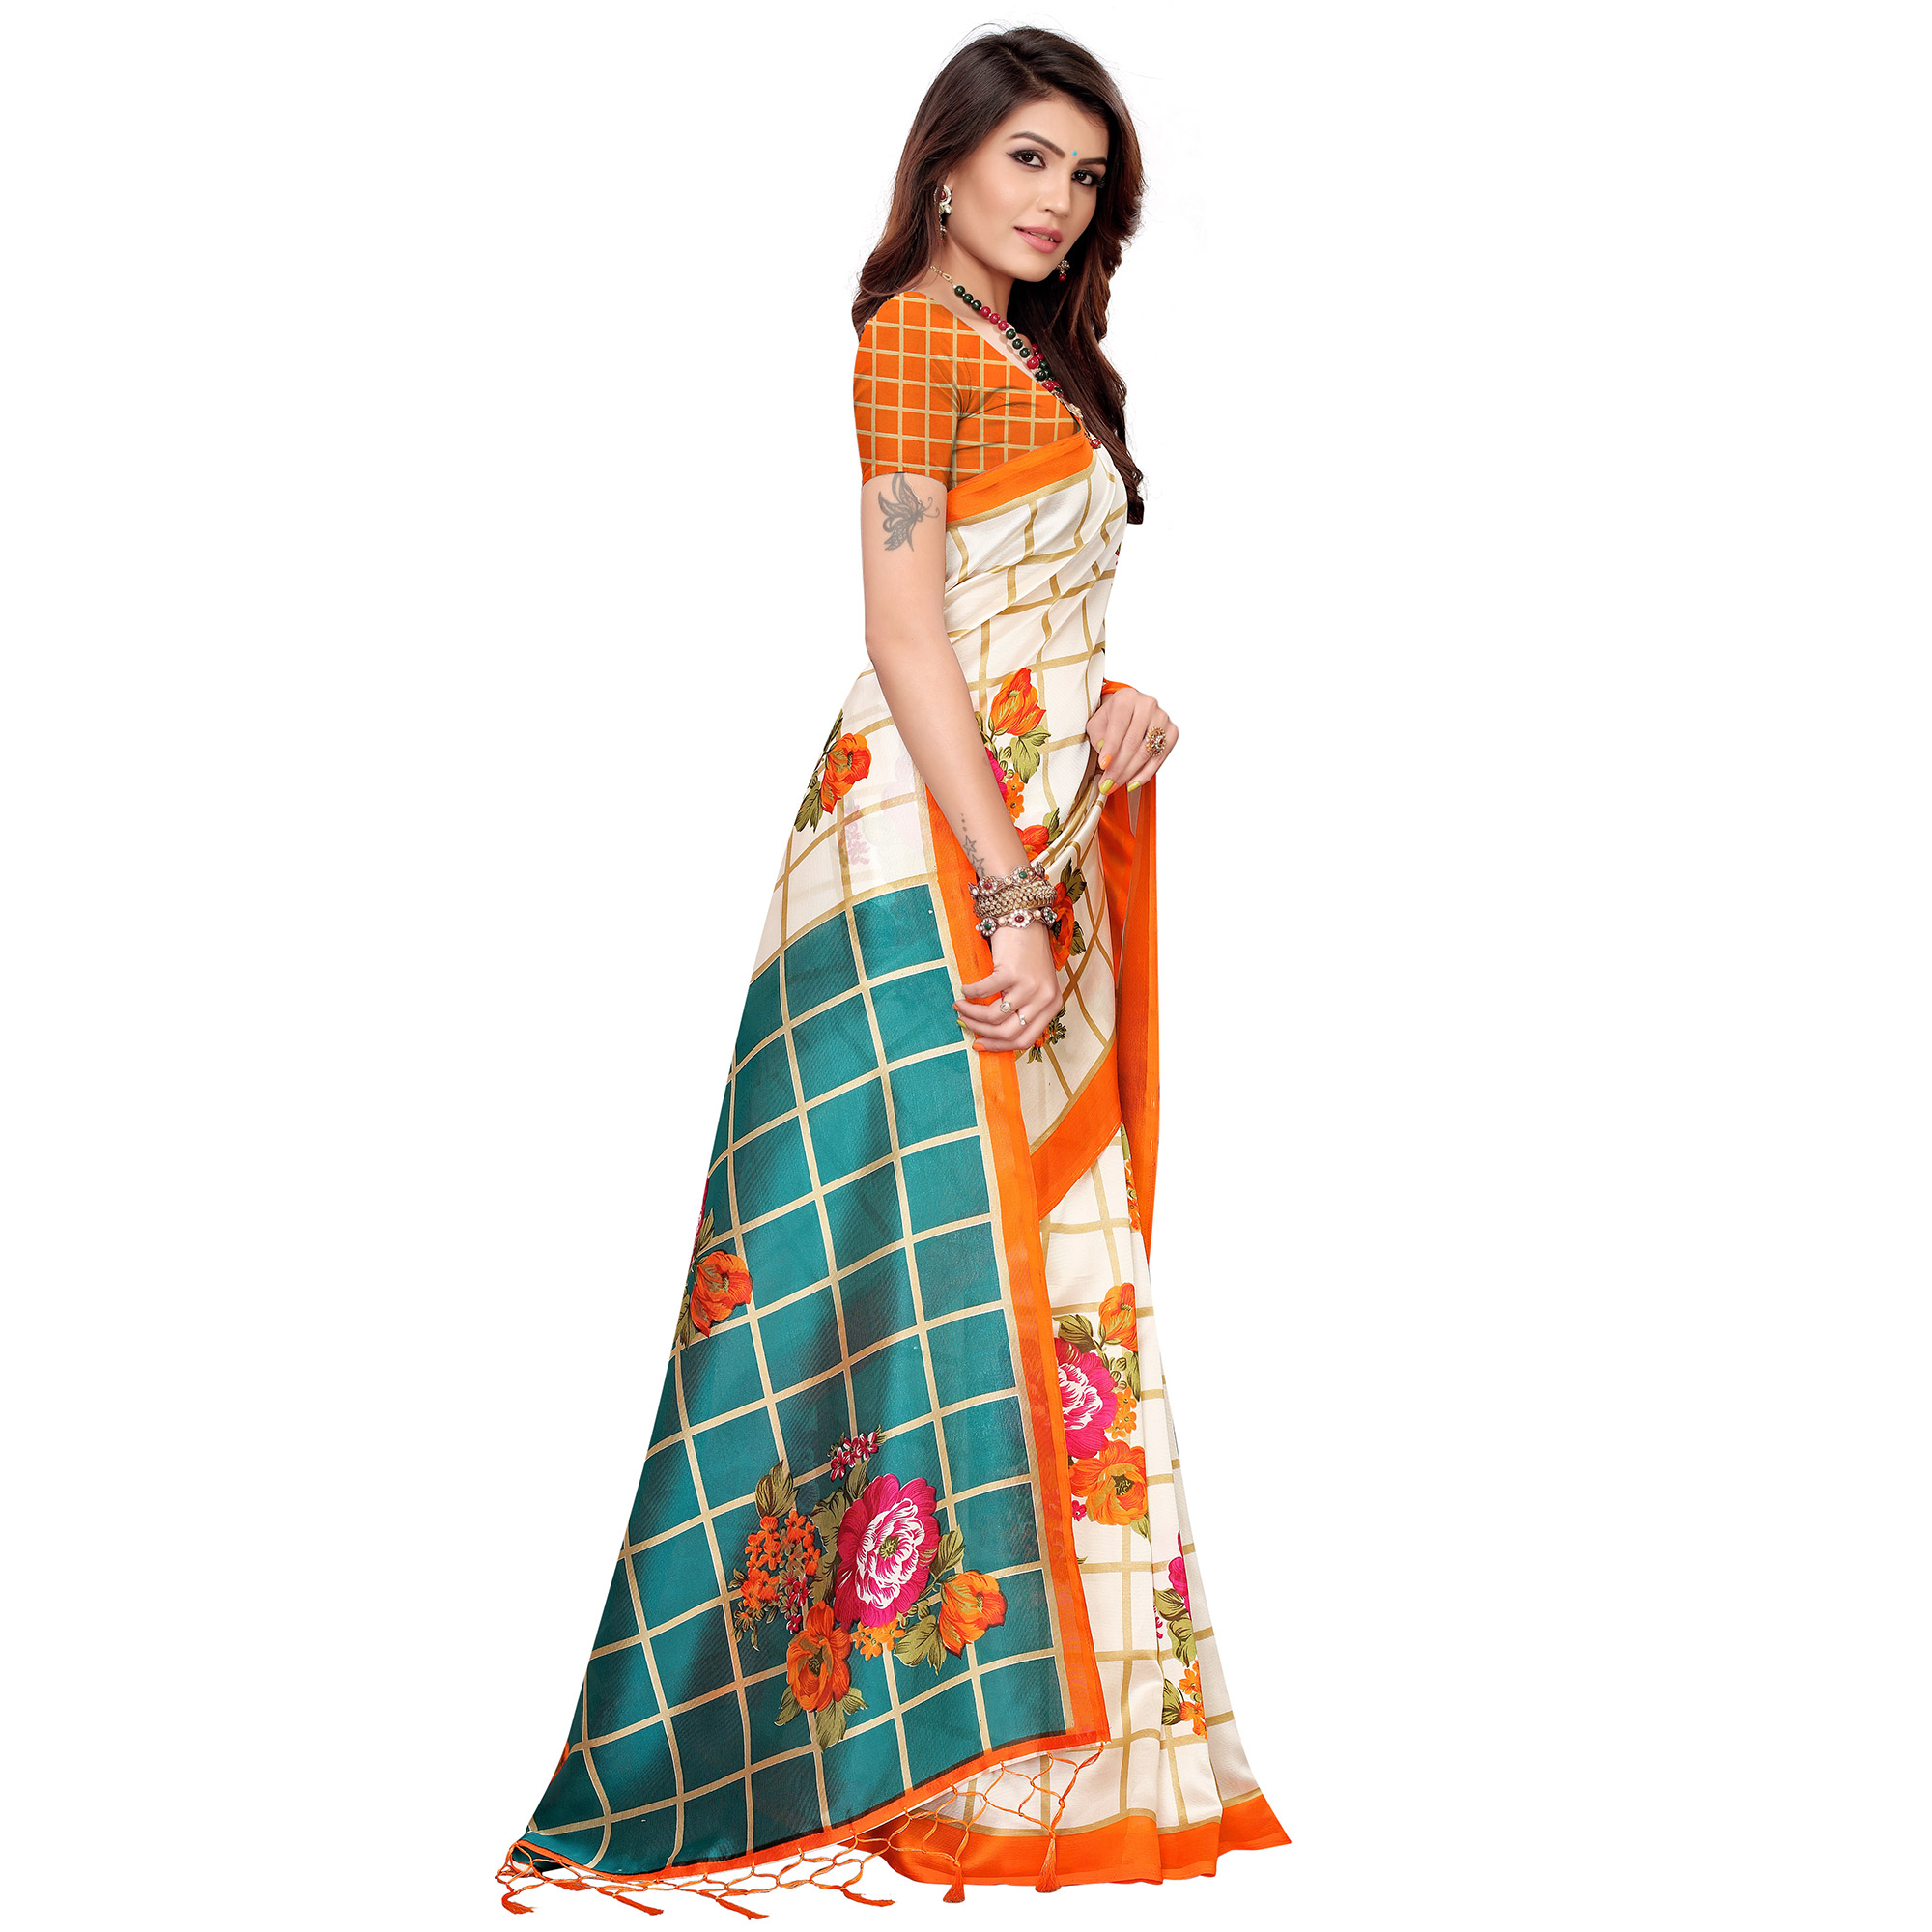 Engrossing Off White-Orange Colored Festive Wear Printed Art Silk Saree